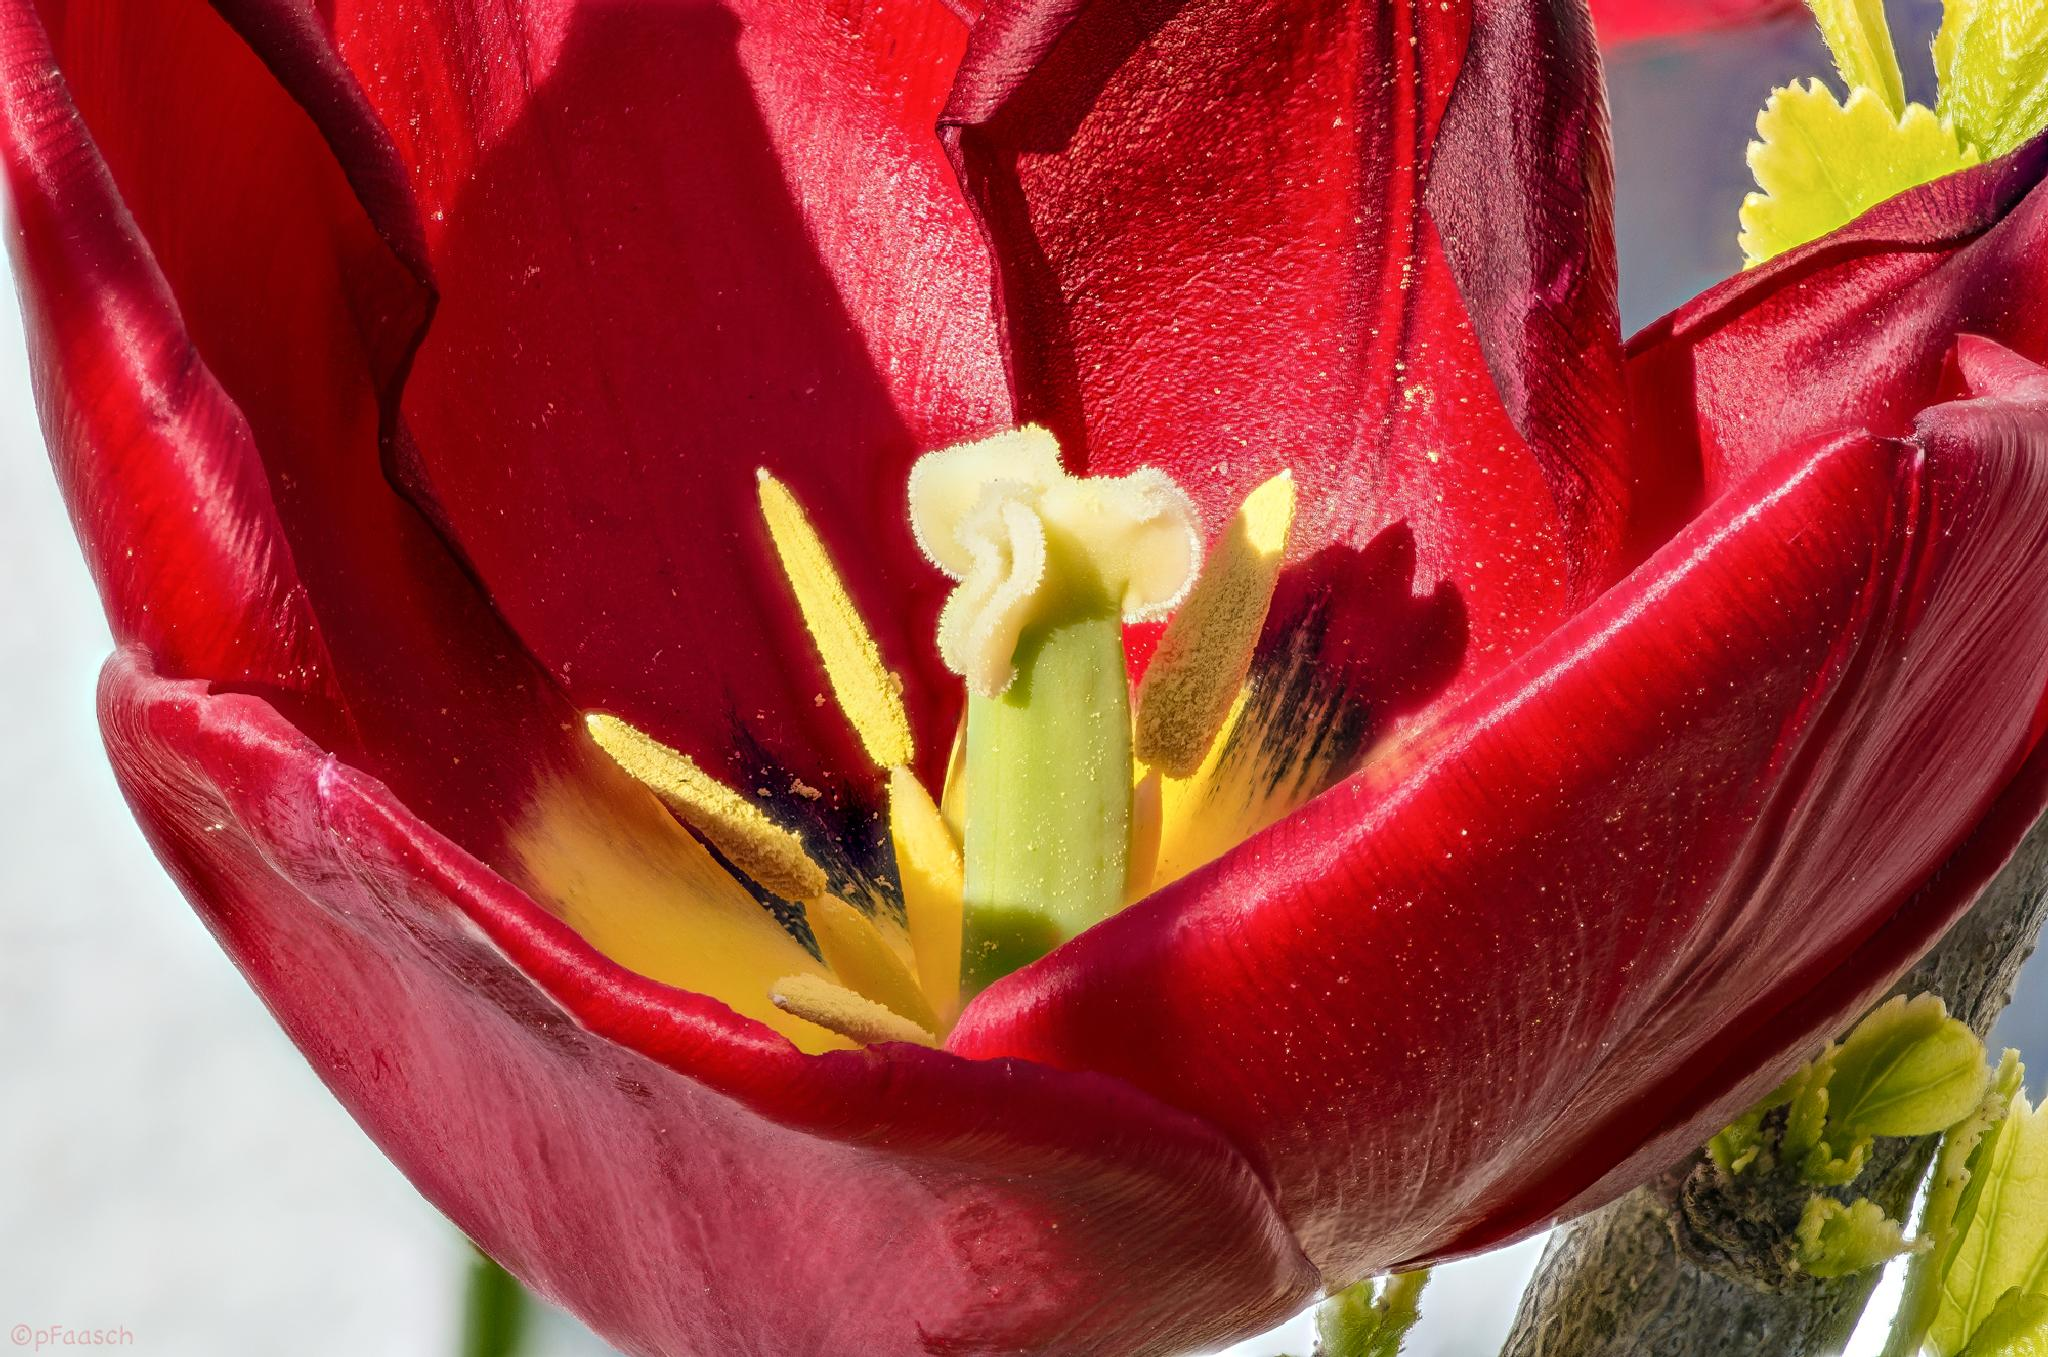 tulip by Peter F